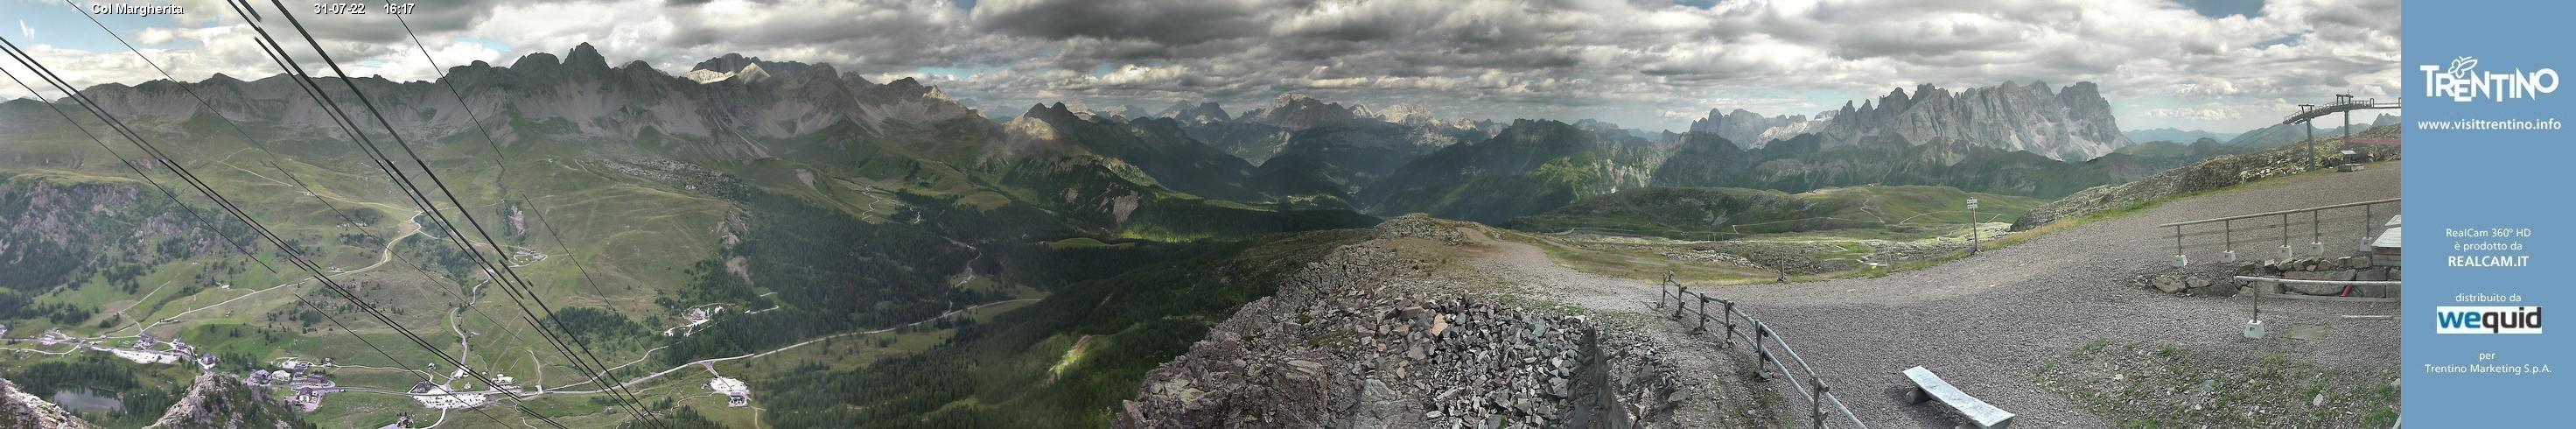 Webcam Panoramica Passo San Pellegrino-Falcade,